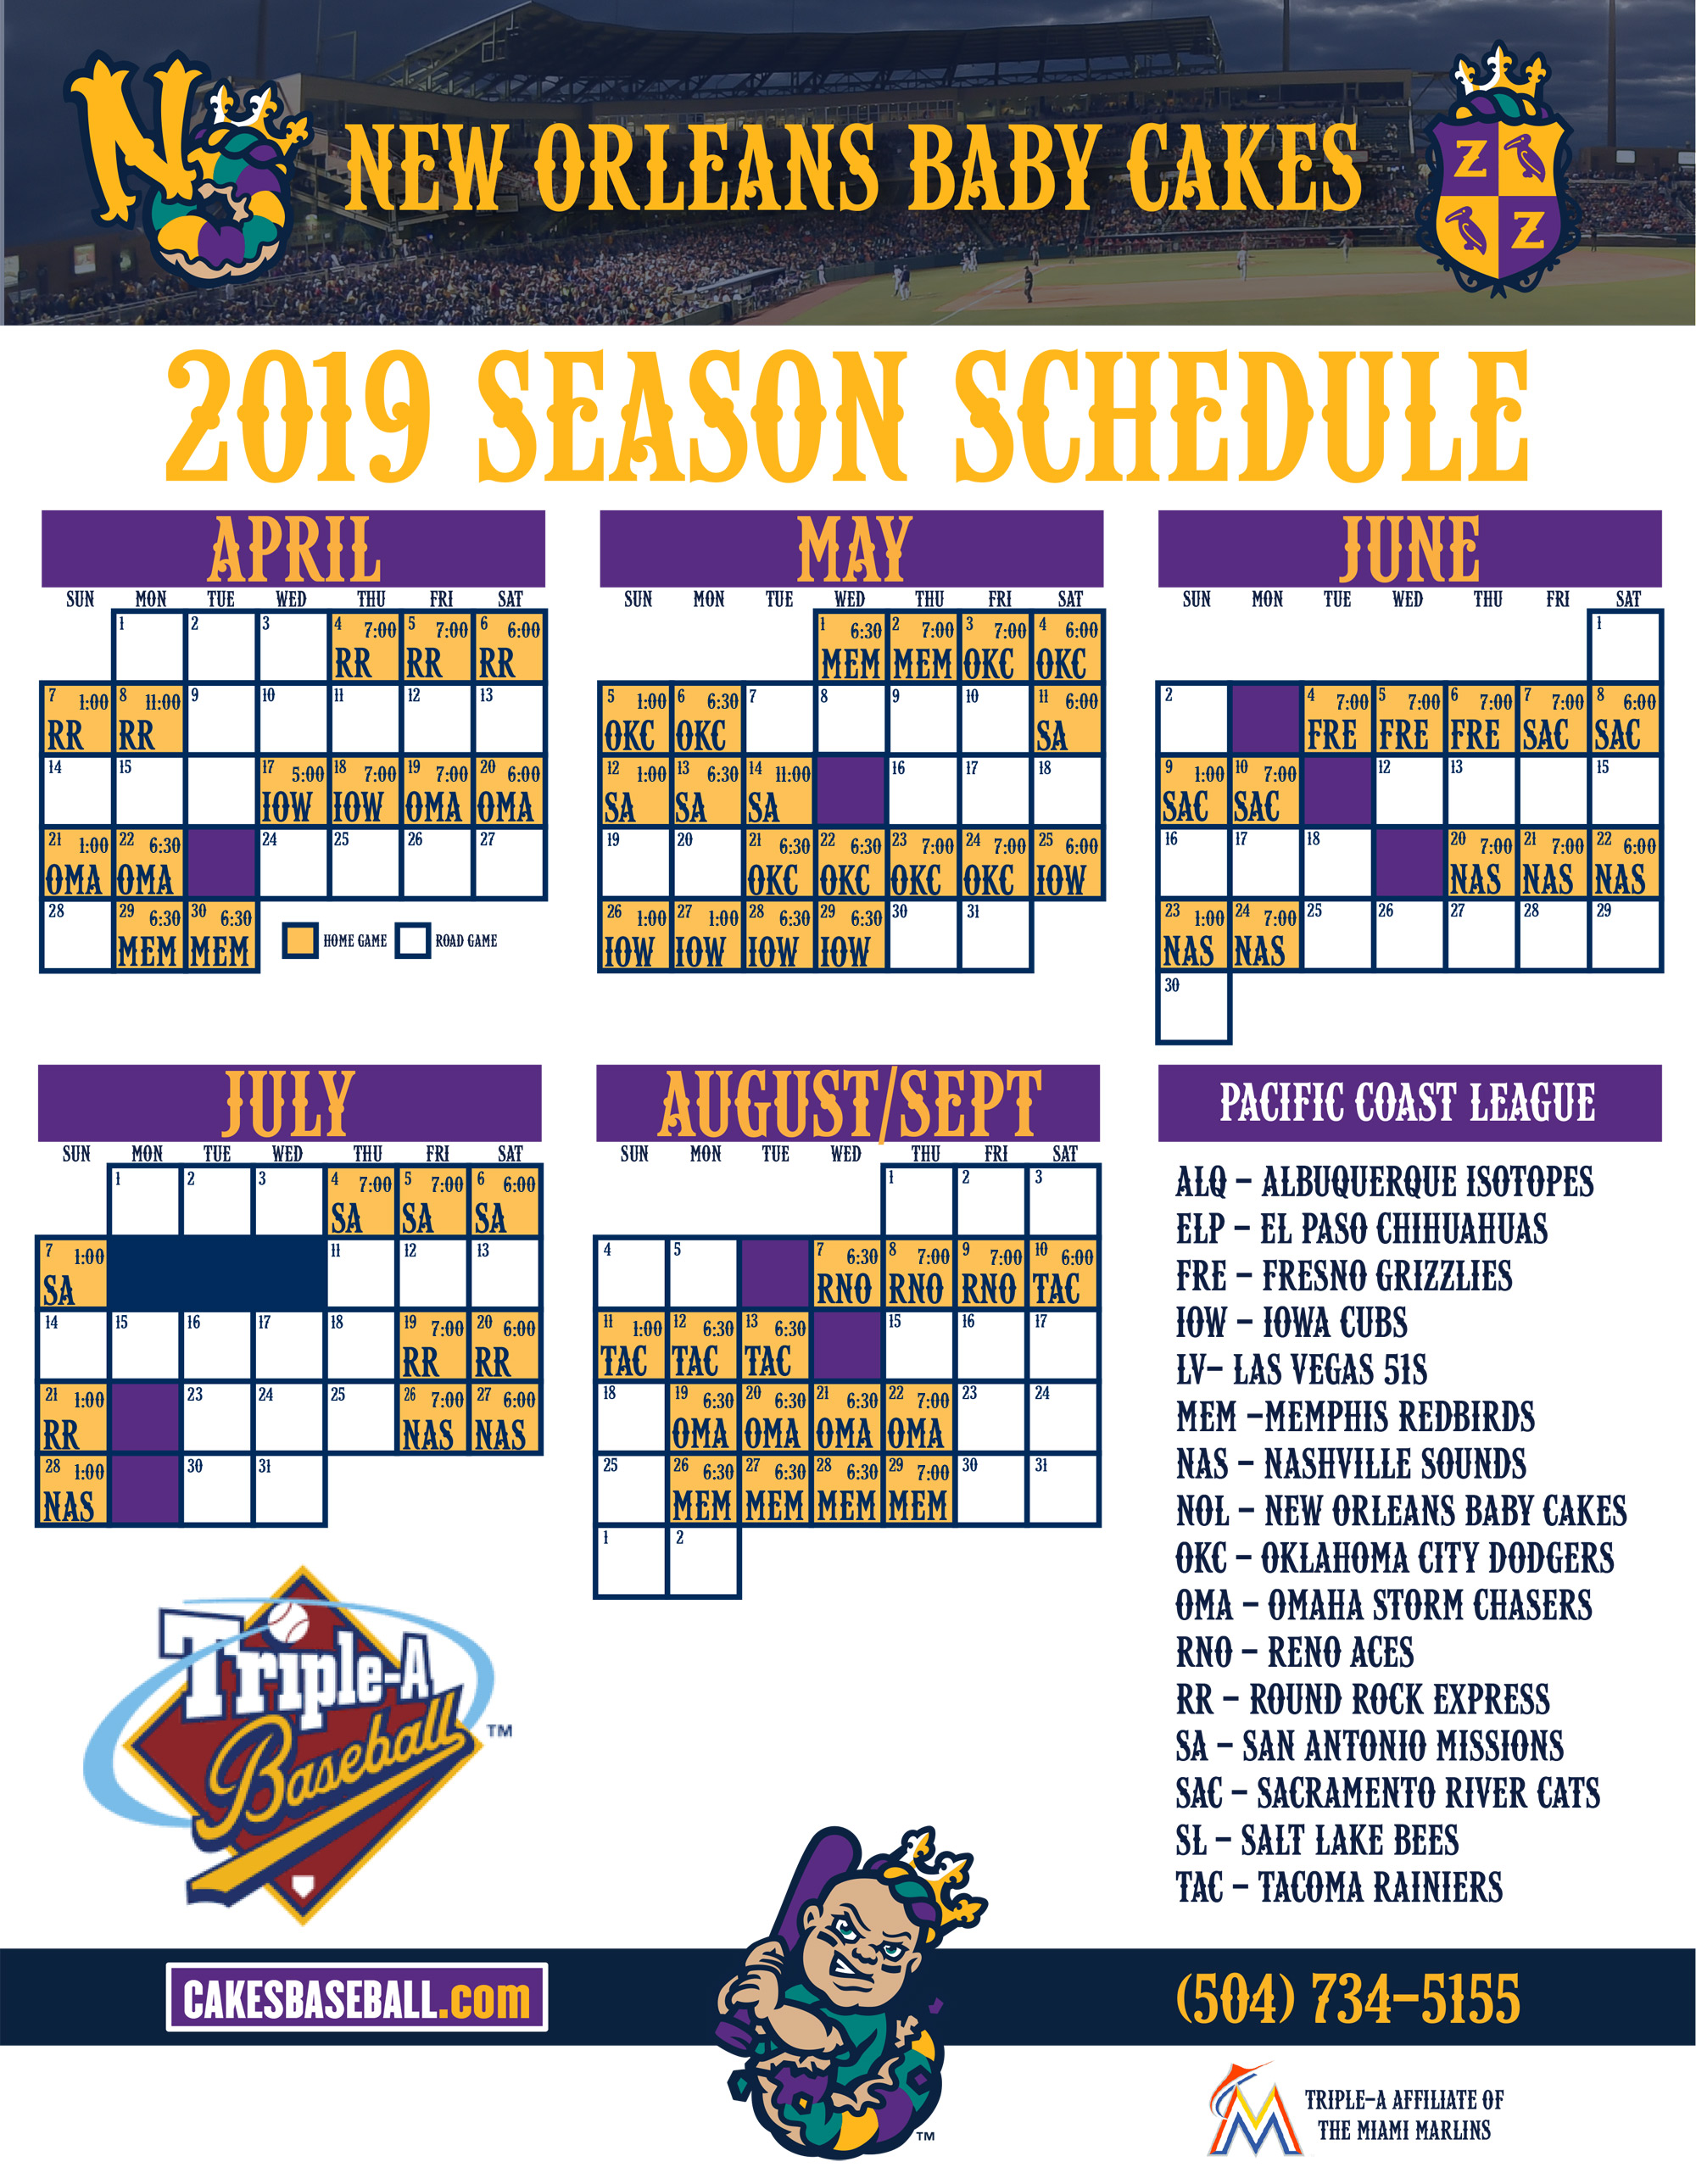 New Orleans 2019 Calendar New Orleans Baby Cakes Schedule | Schedule | Baby Cakes